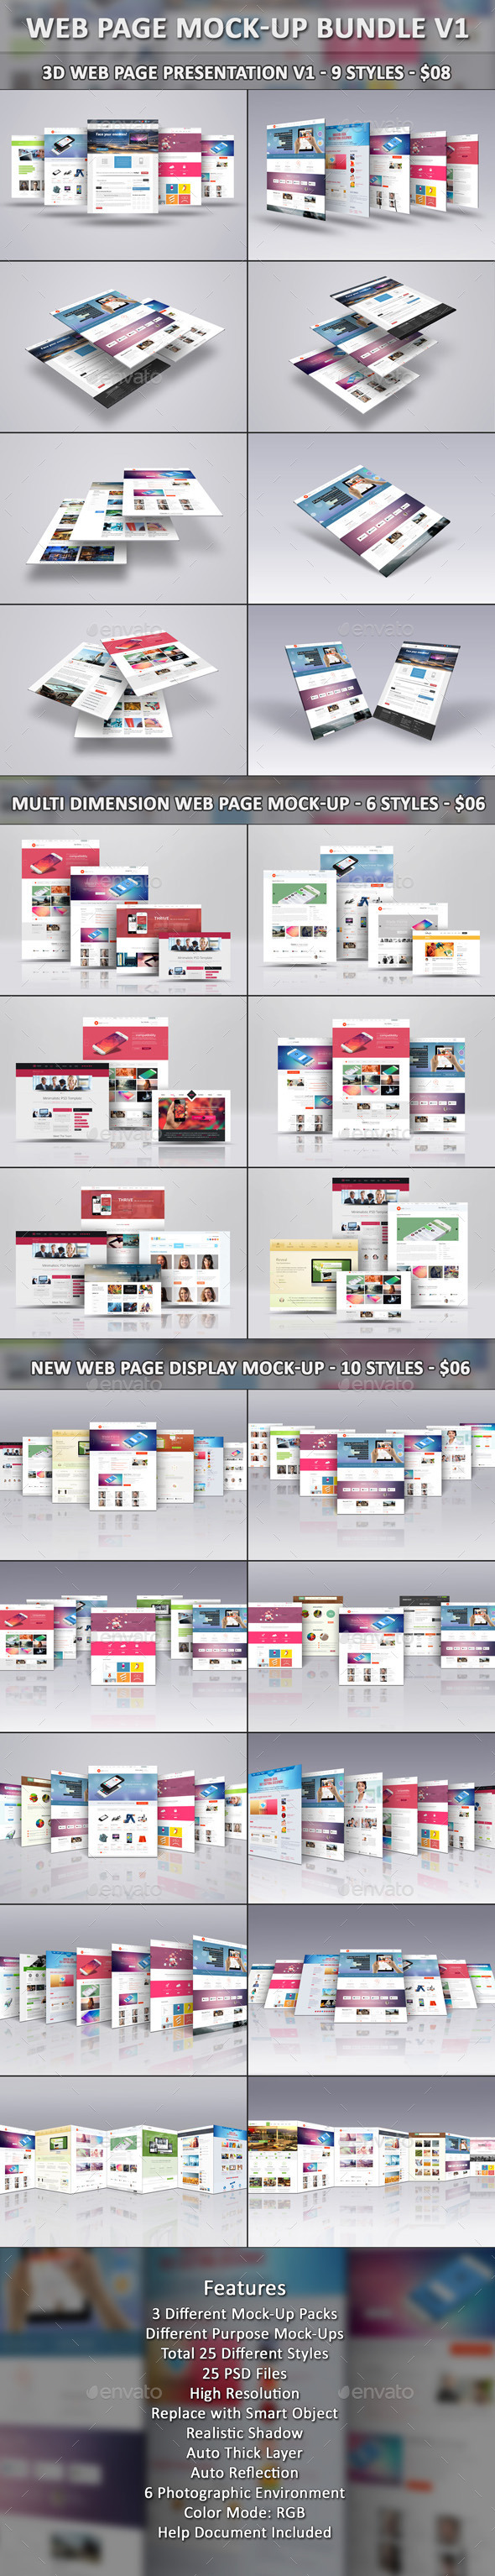 Web Page Mock-Up Bundle V1 - Website Displays